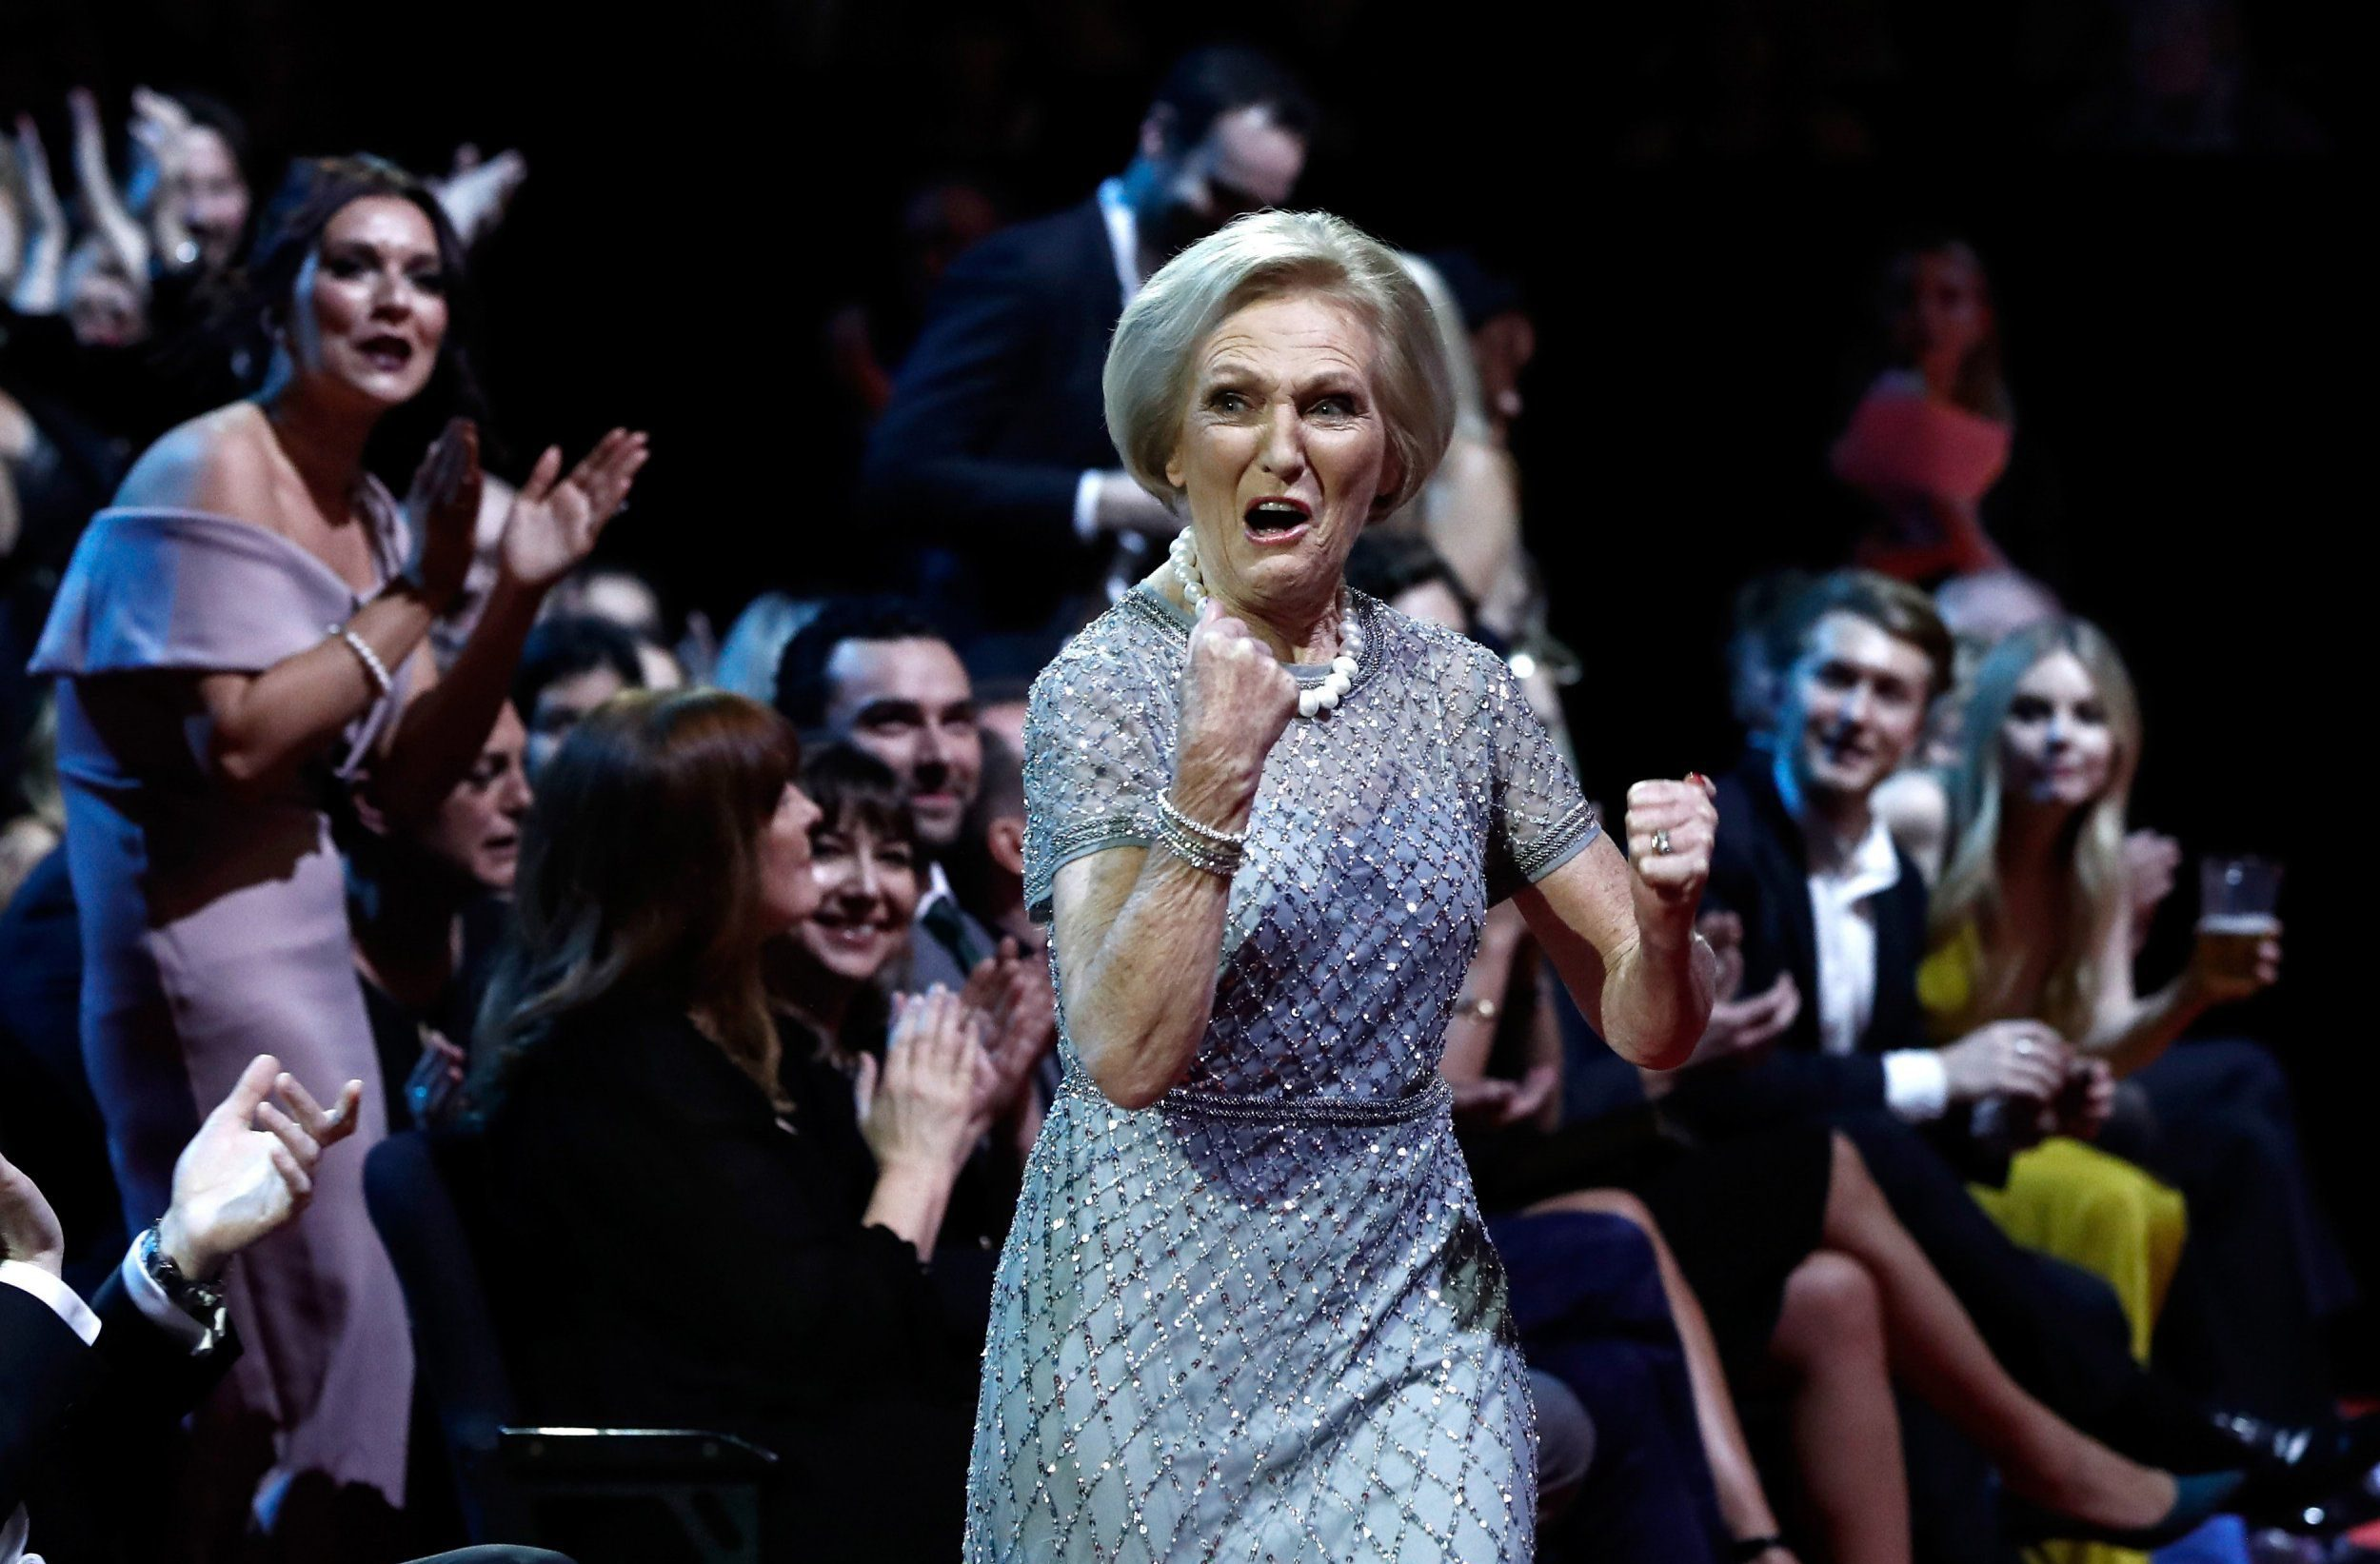 LONDON, ENGLAND - JANUARY 25: Mary Berry reacts to winning the Best TV Judge during the National Television Awards at The O2 Arena on January 25, 2017 in London, England. (Photo by John Phillips/Getty Images)